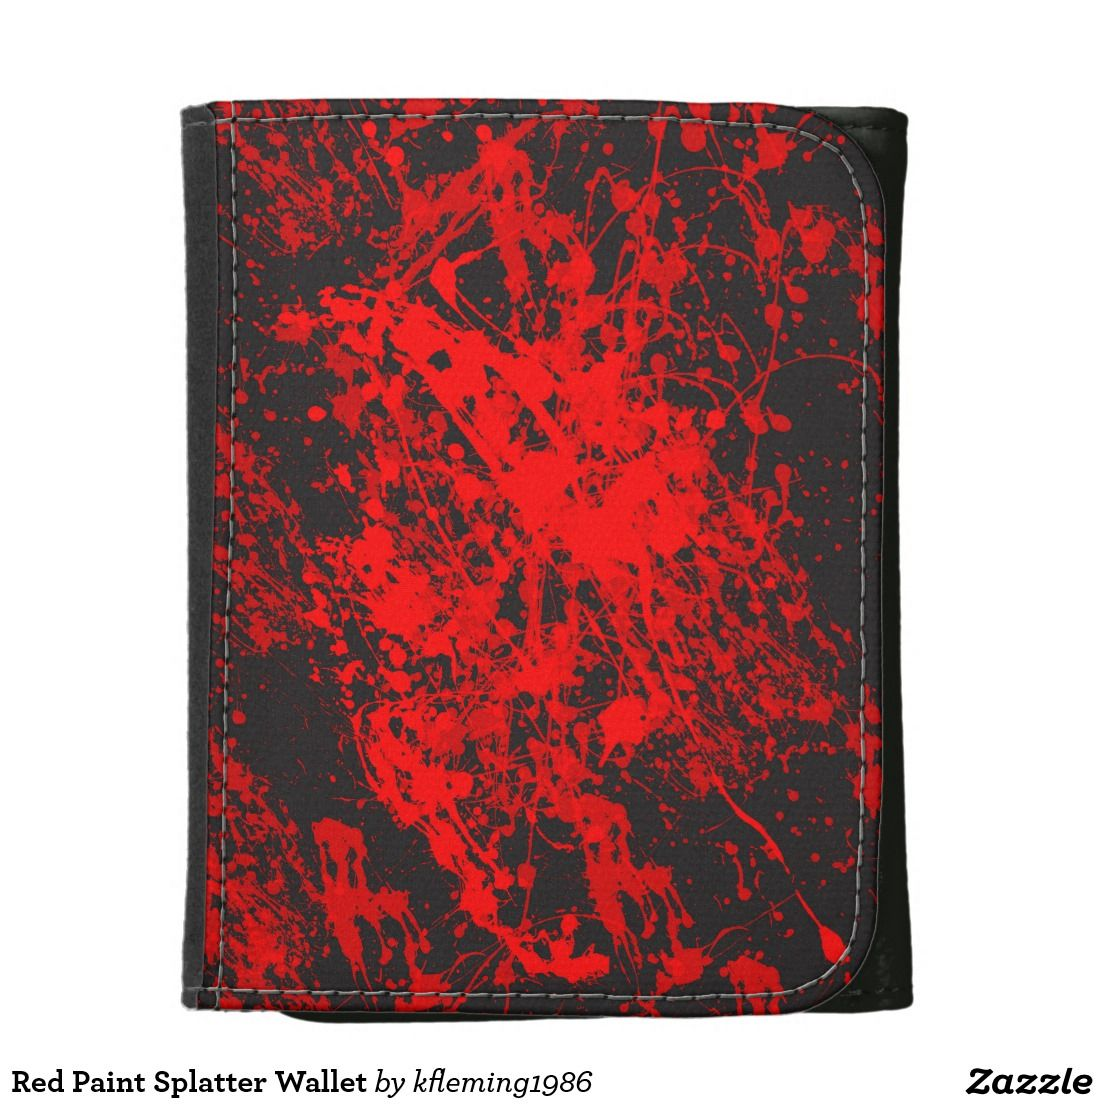 Red Paint Splatter Wallet